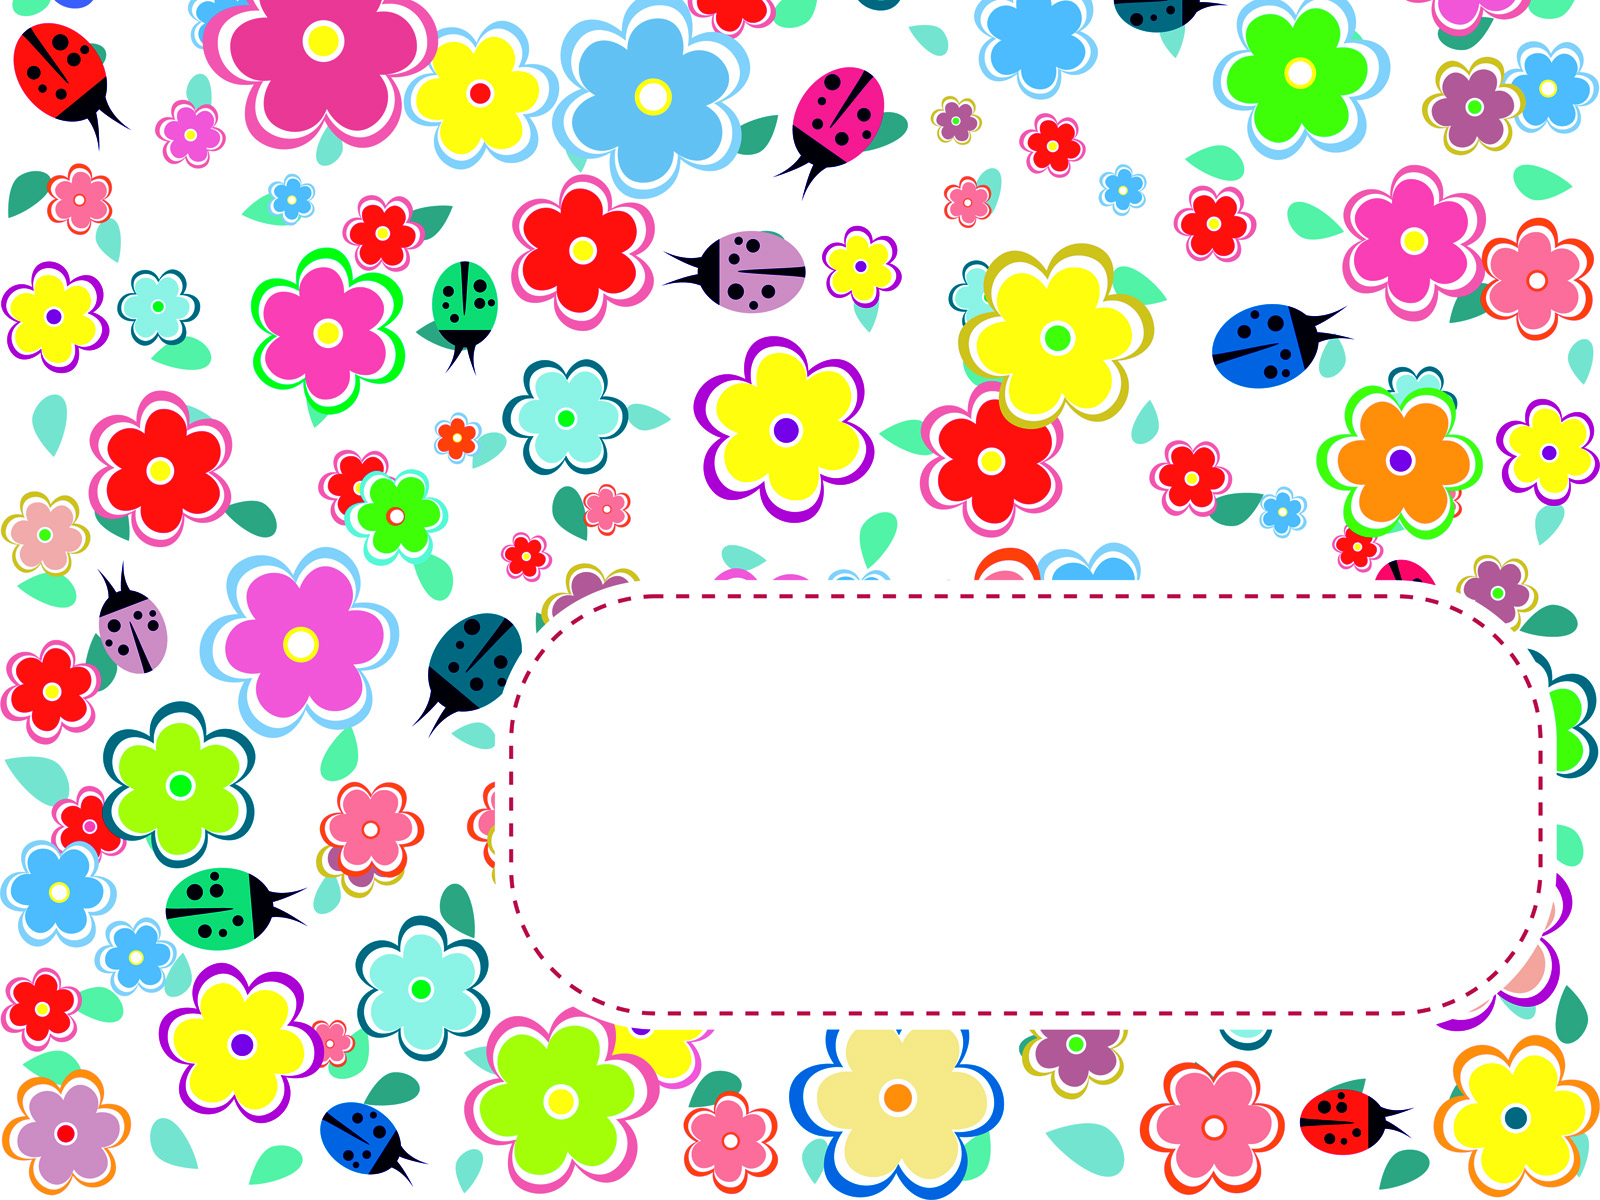 flowers and ladybirds ppt backgrounds - design, flowers templates, Modern powerpoint